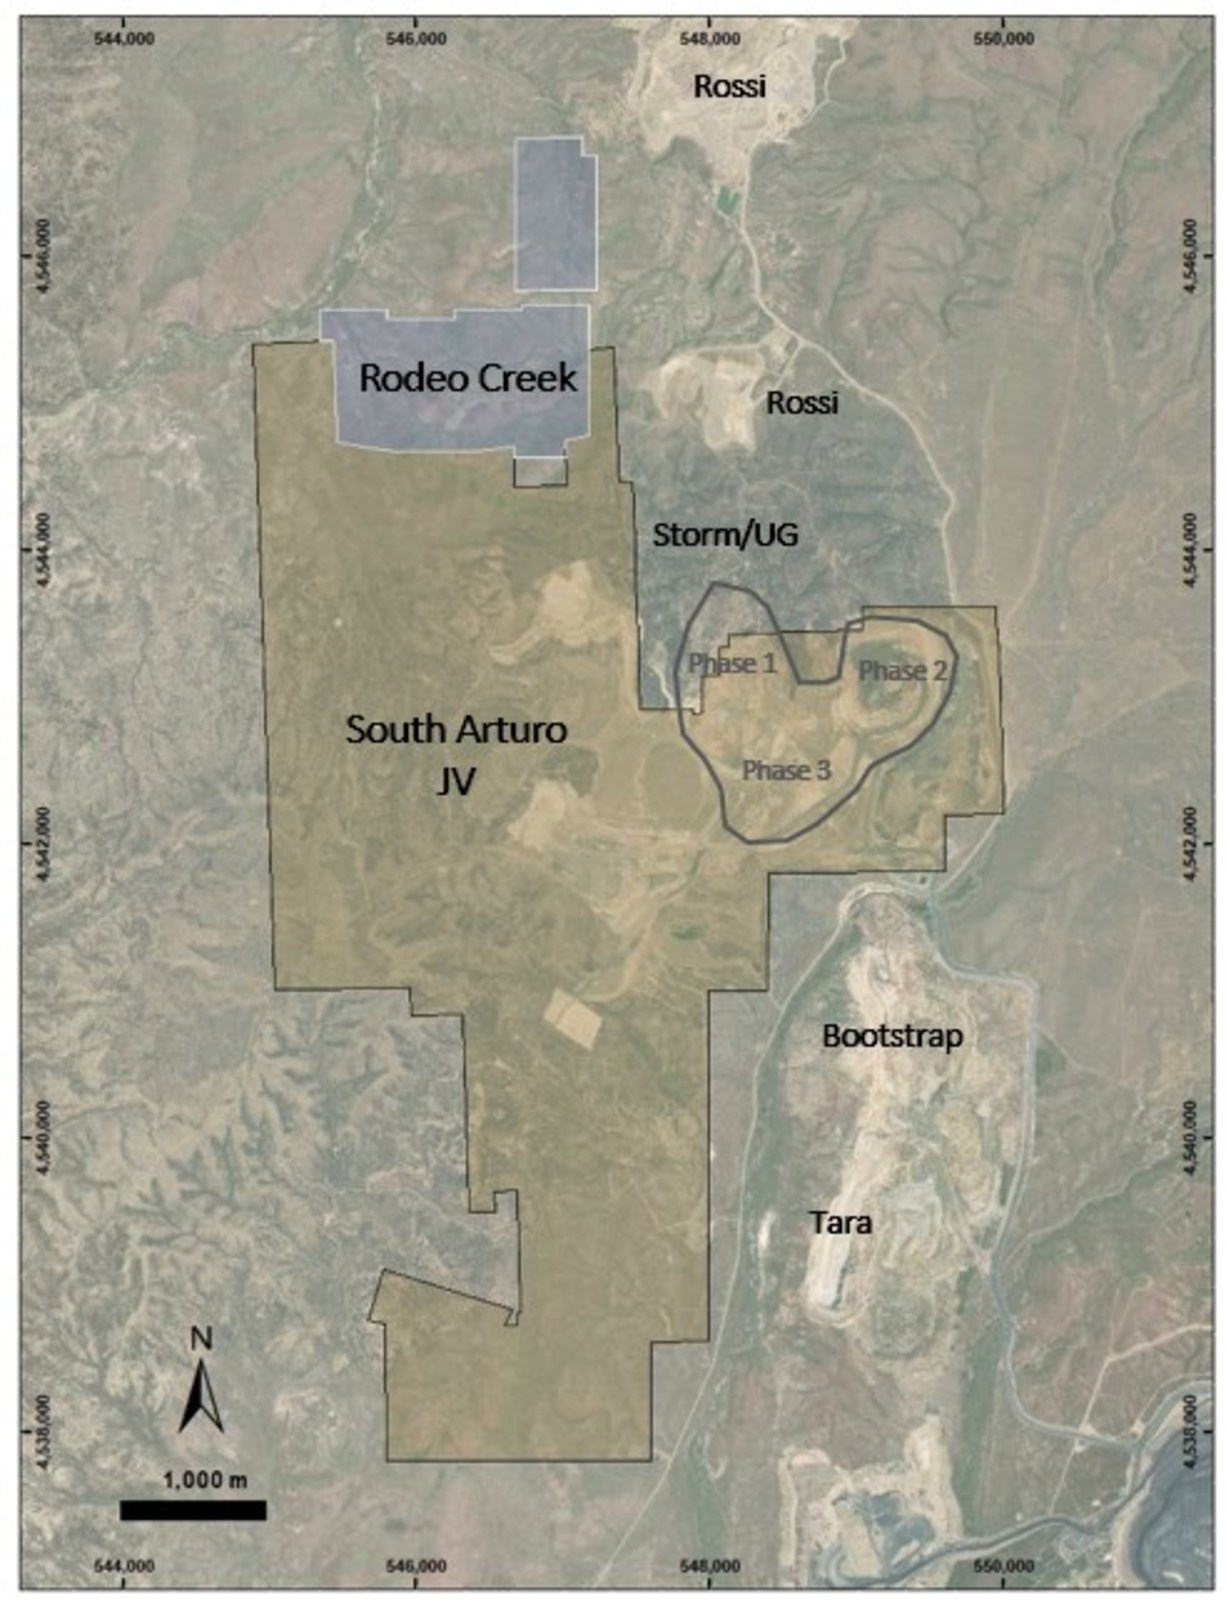 Figure 4: Property limits of Rodeo Creek and South Arturo showing the proximity of the near gold mines.